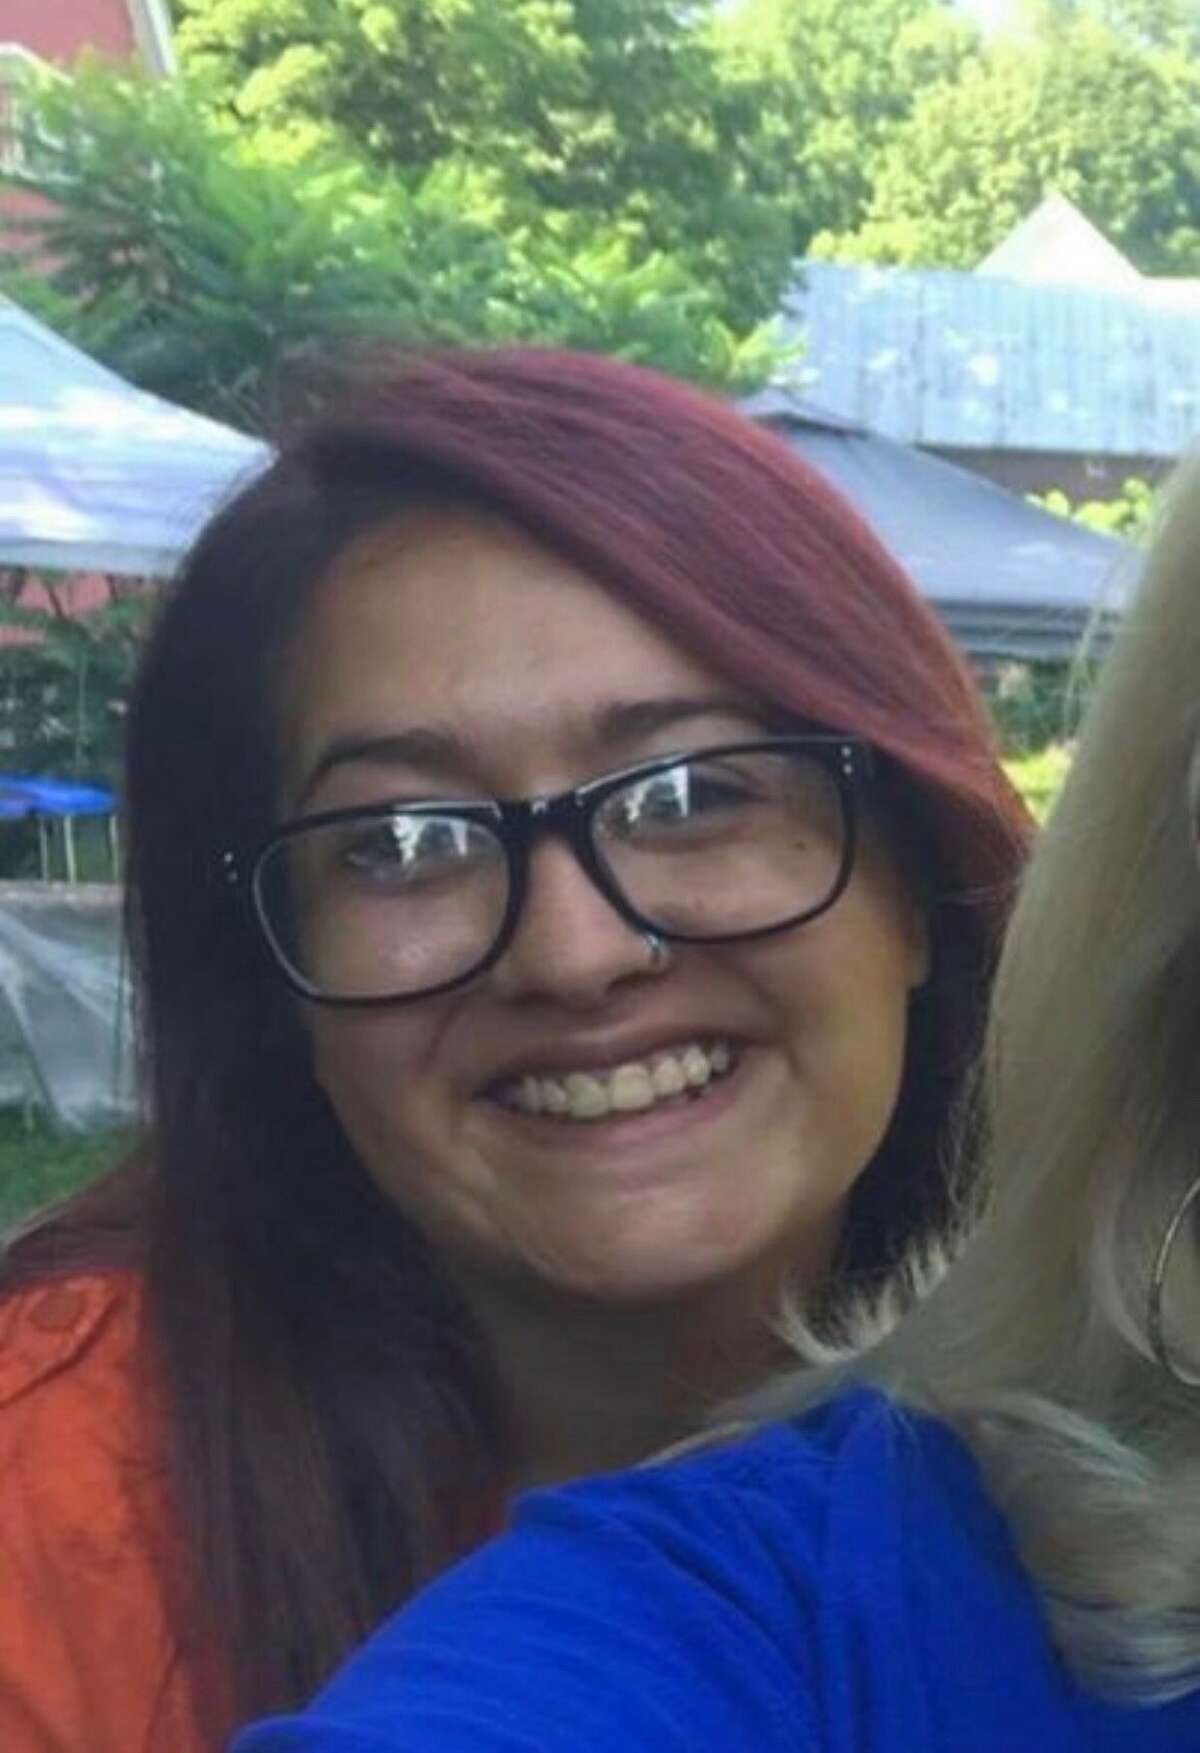 Michaela MacVilla, age 21, was last seen in the early morning on Tuesday, September 25, 2018, at approximately 12:10 a.m., leaving the Stewart's Shop on West Main Street in the village of St. Johnsville.